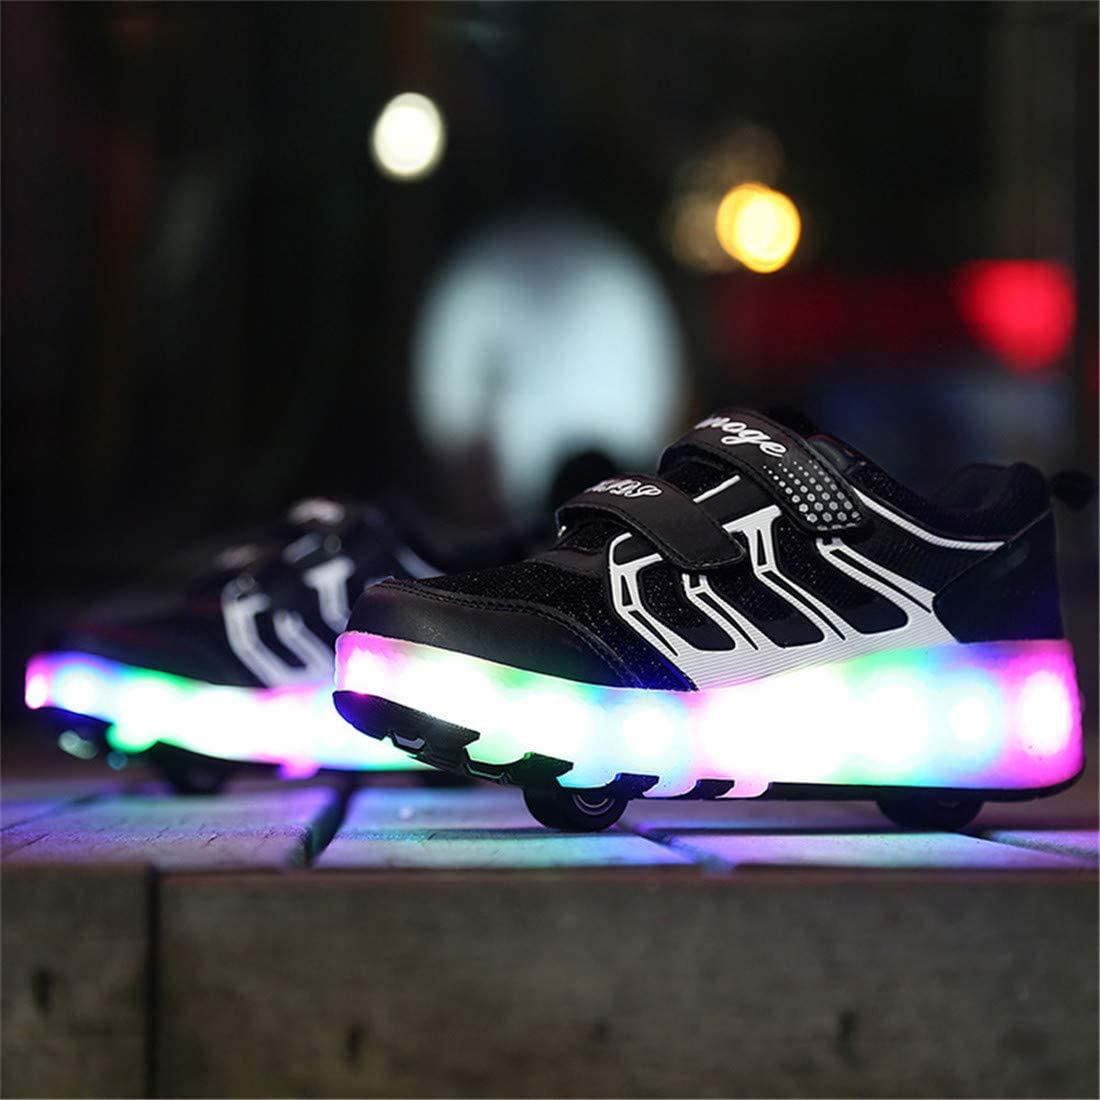 llh Led Double Wheels Roller Skate Shoes,Boys Girls Flashing Luminous Skates Retractable Skateboarding Rollerblades Outdoor Adjustable Sports Cross Trainers With USB Charging,Grey-30